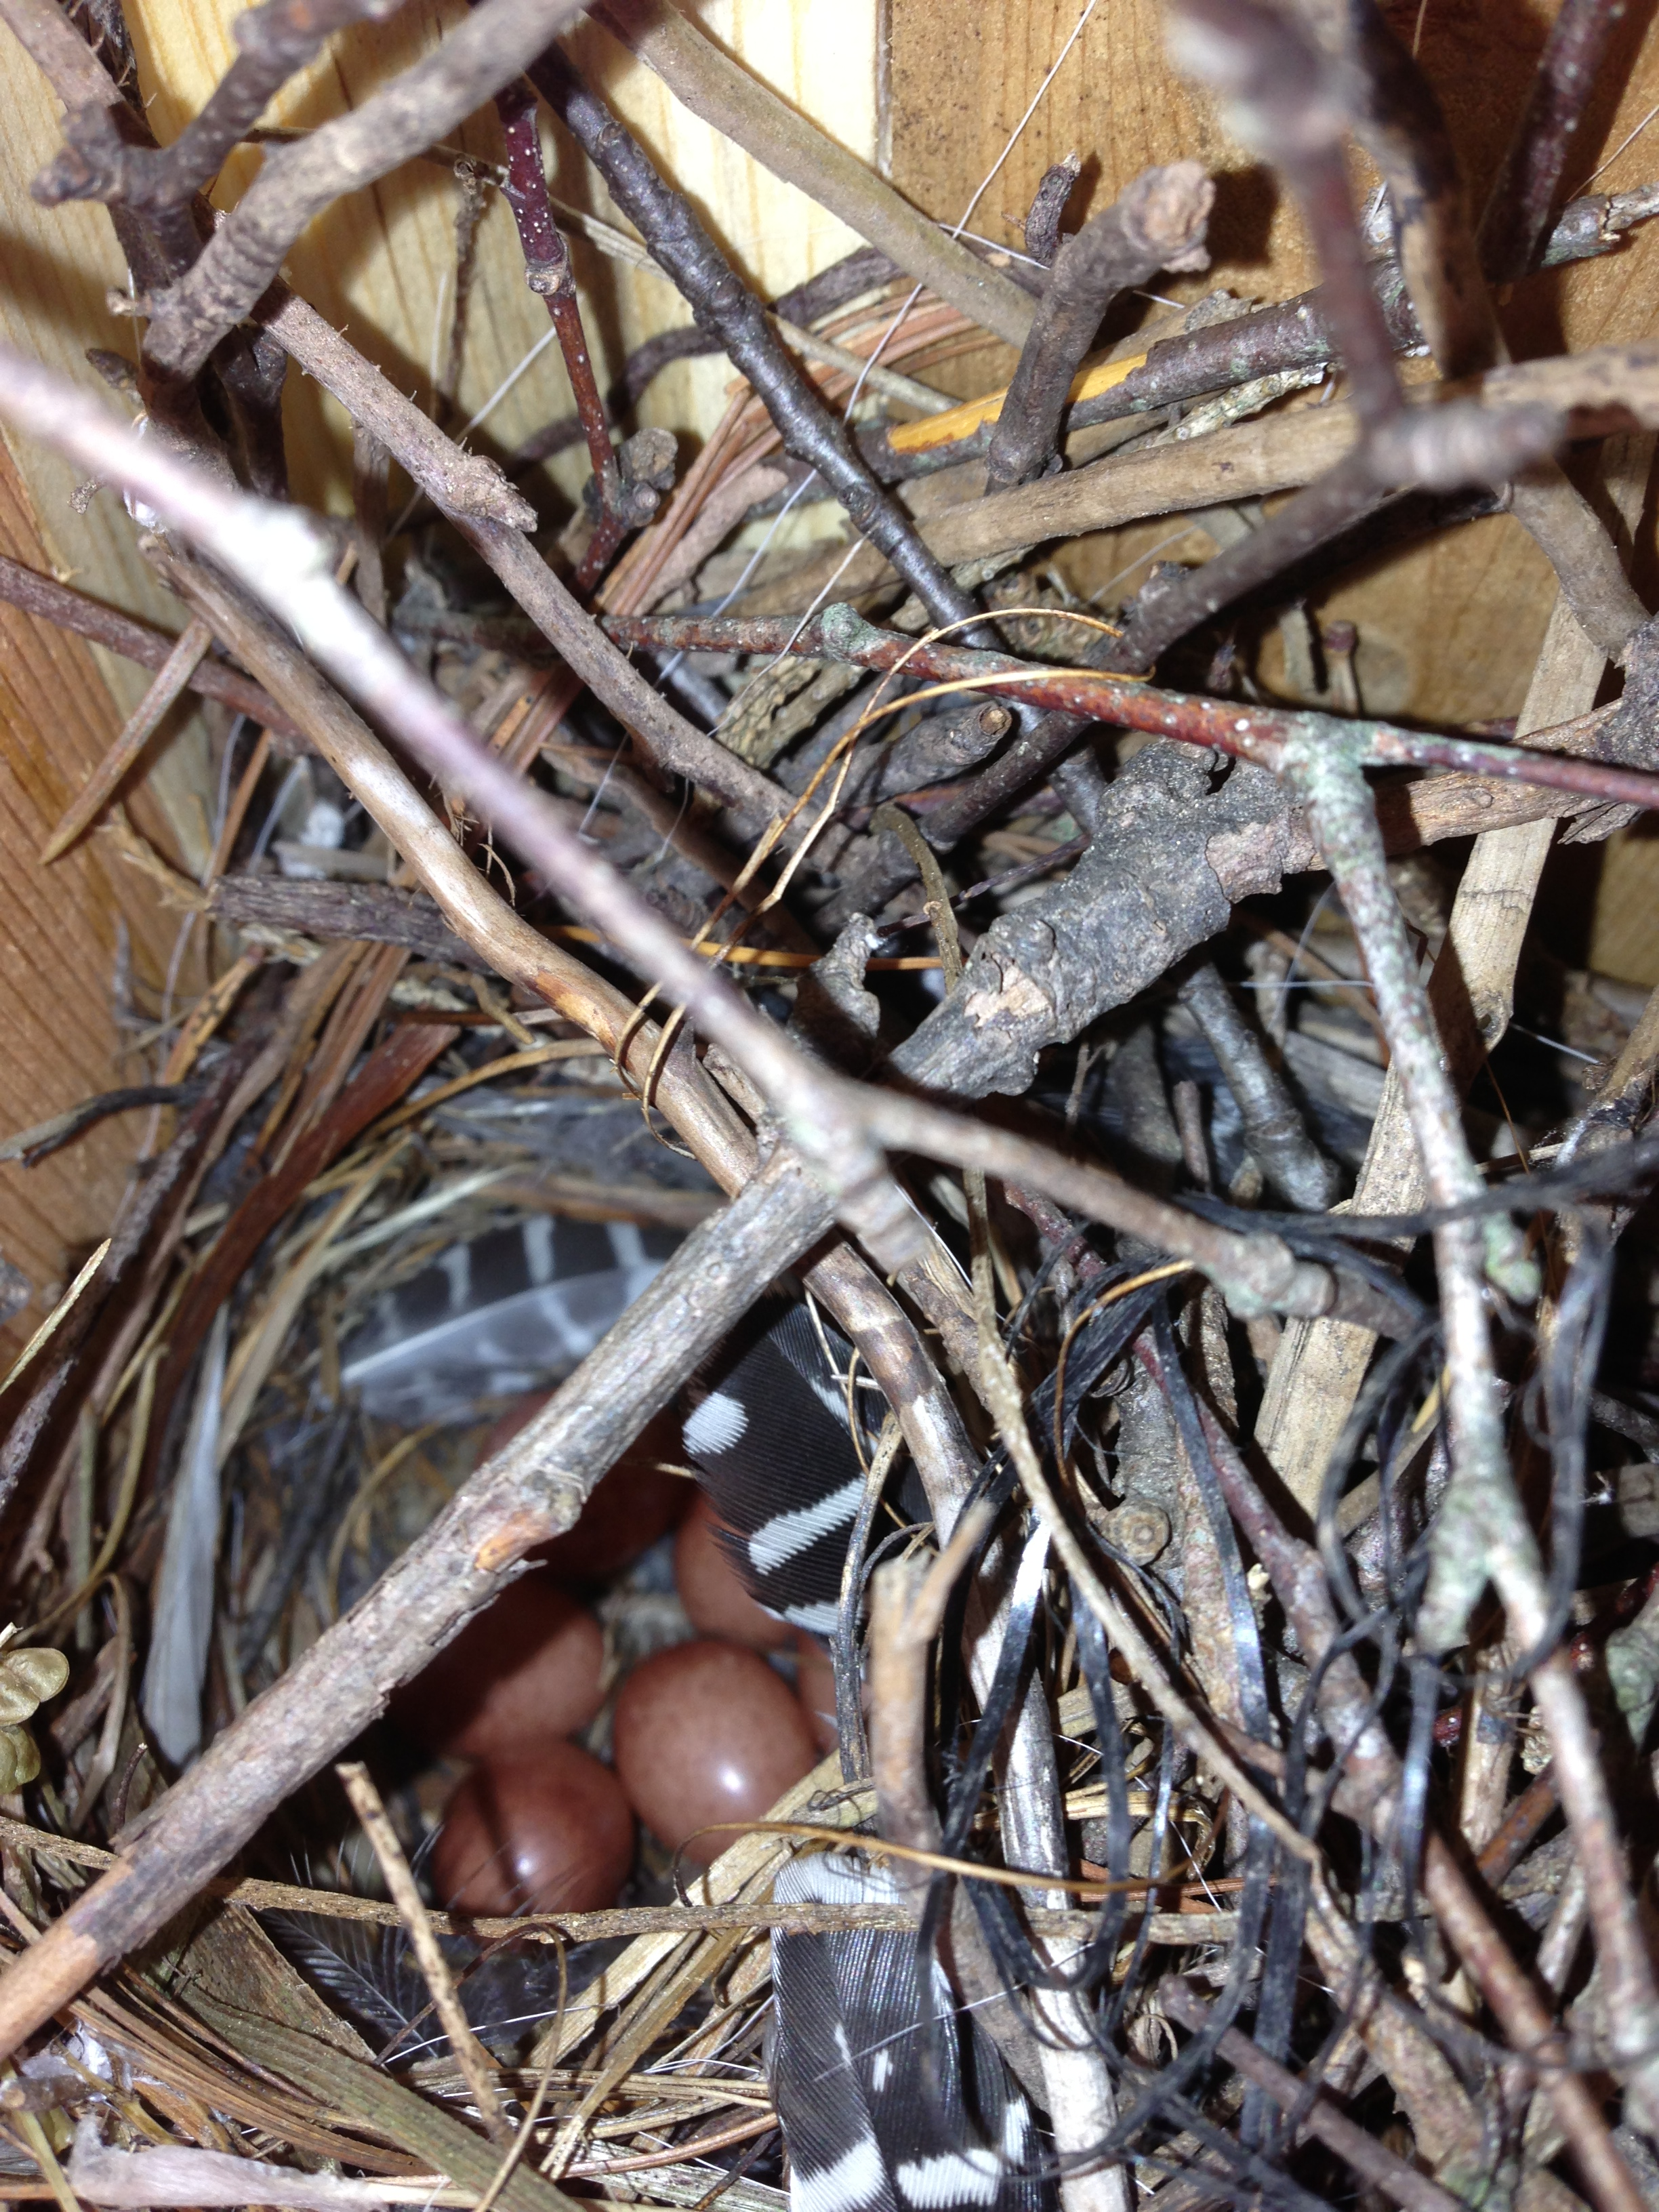 House wren nest and eggs.  A Downy woodpecker feather adds an enchanting touch to the nest decor.  Photo by Blake Goll